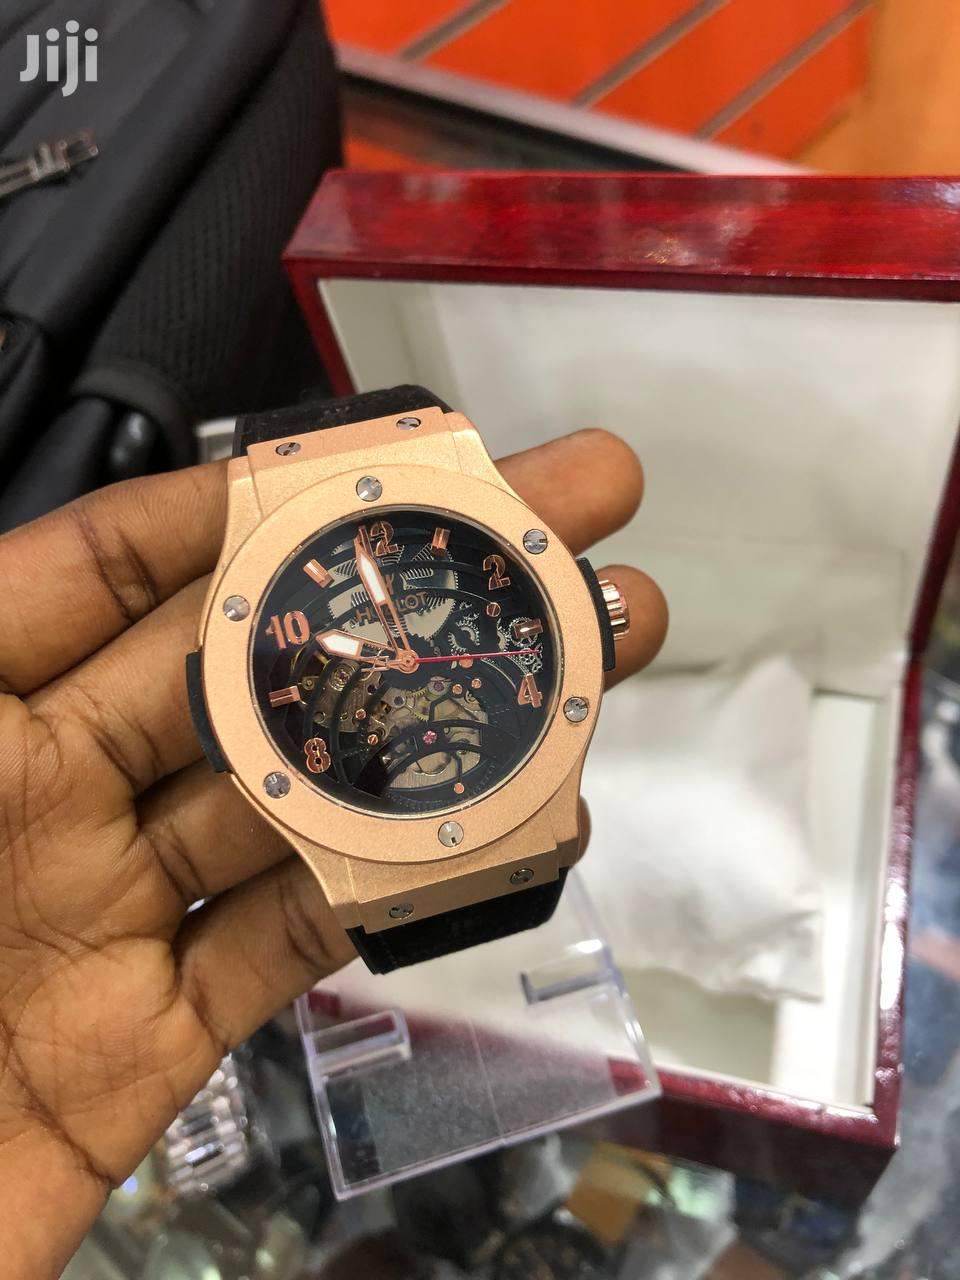 Original Hublot Classic Watches | Smart Watches & Trackers for sale in Ilala, Dar es Salaam, Tanzania